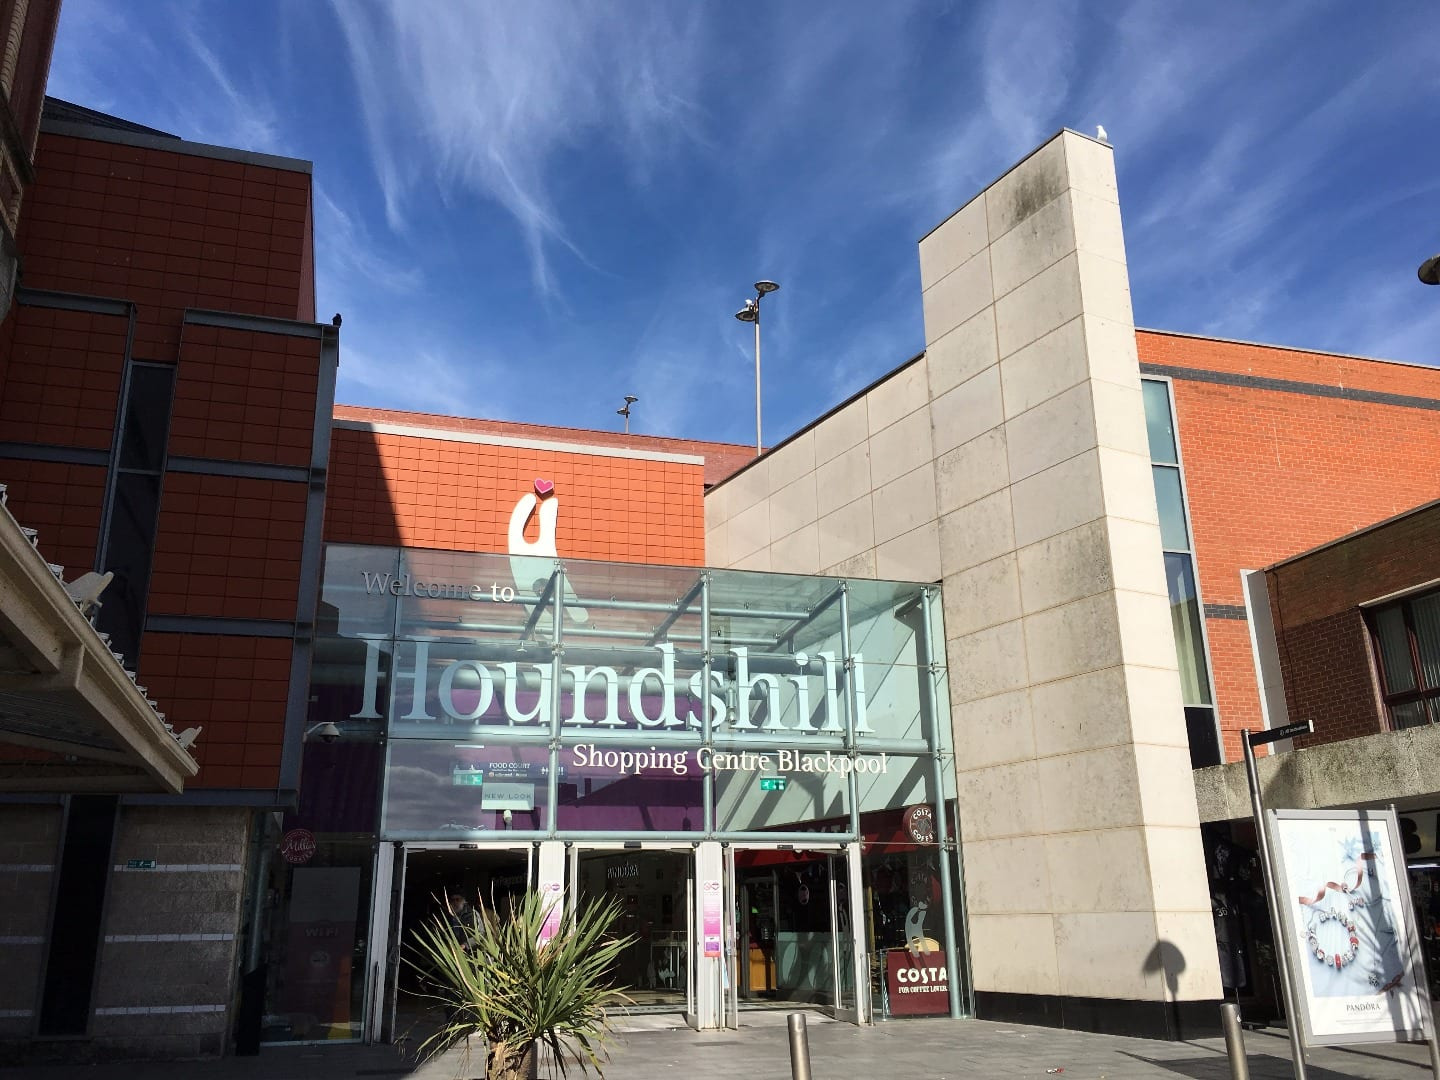 Houndshill Shopping Centre, Blackpool